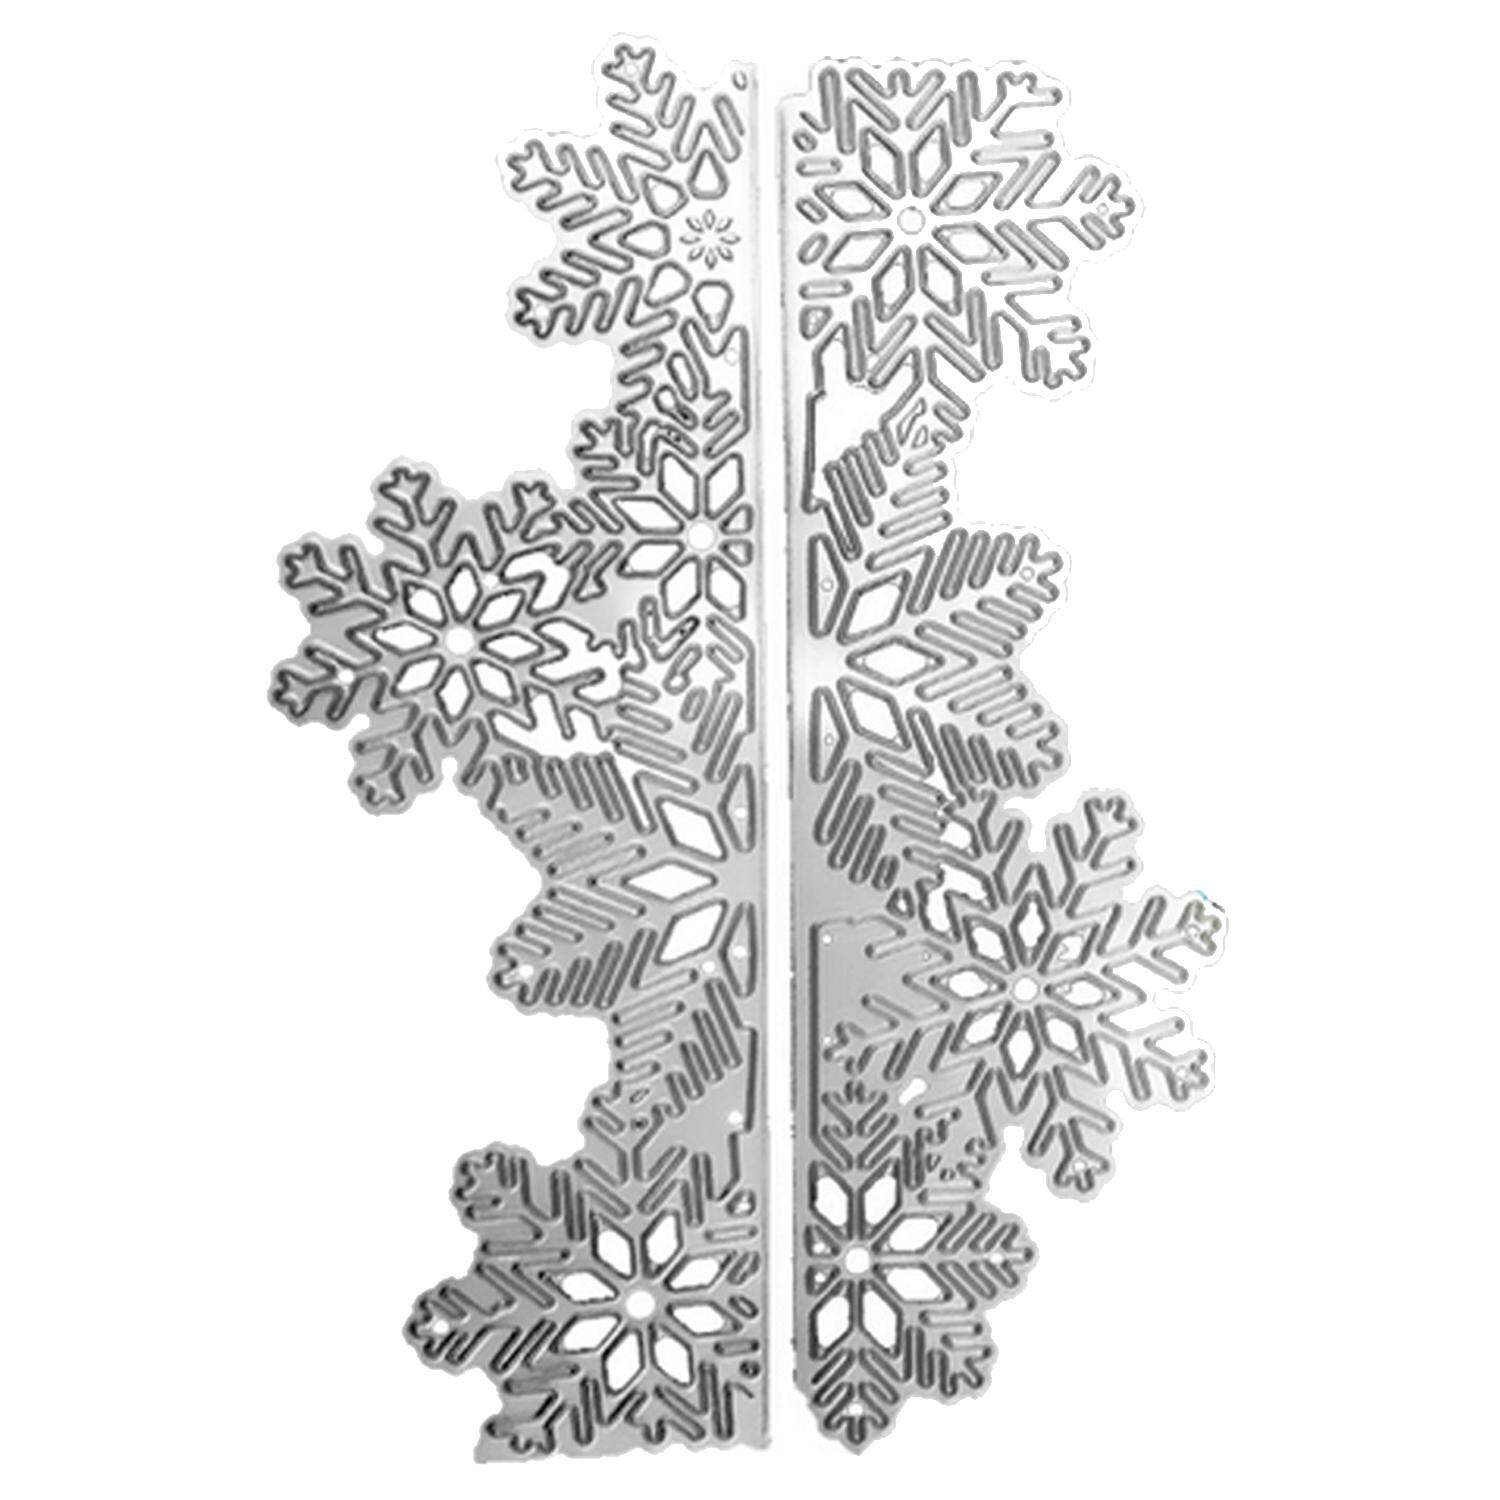 Carbon Steel Snowflake Embossing Cutting Dies Stencils Templates Mould Set For Diy Scrapbooking Album Paper Card By Stoneky.